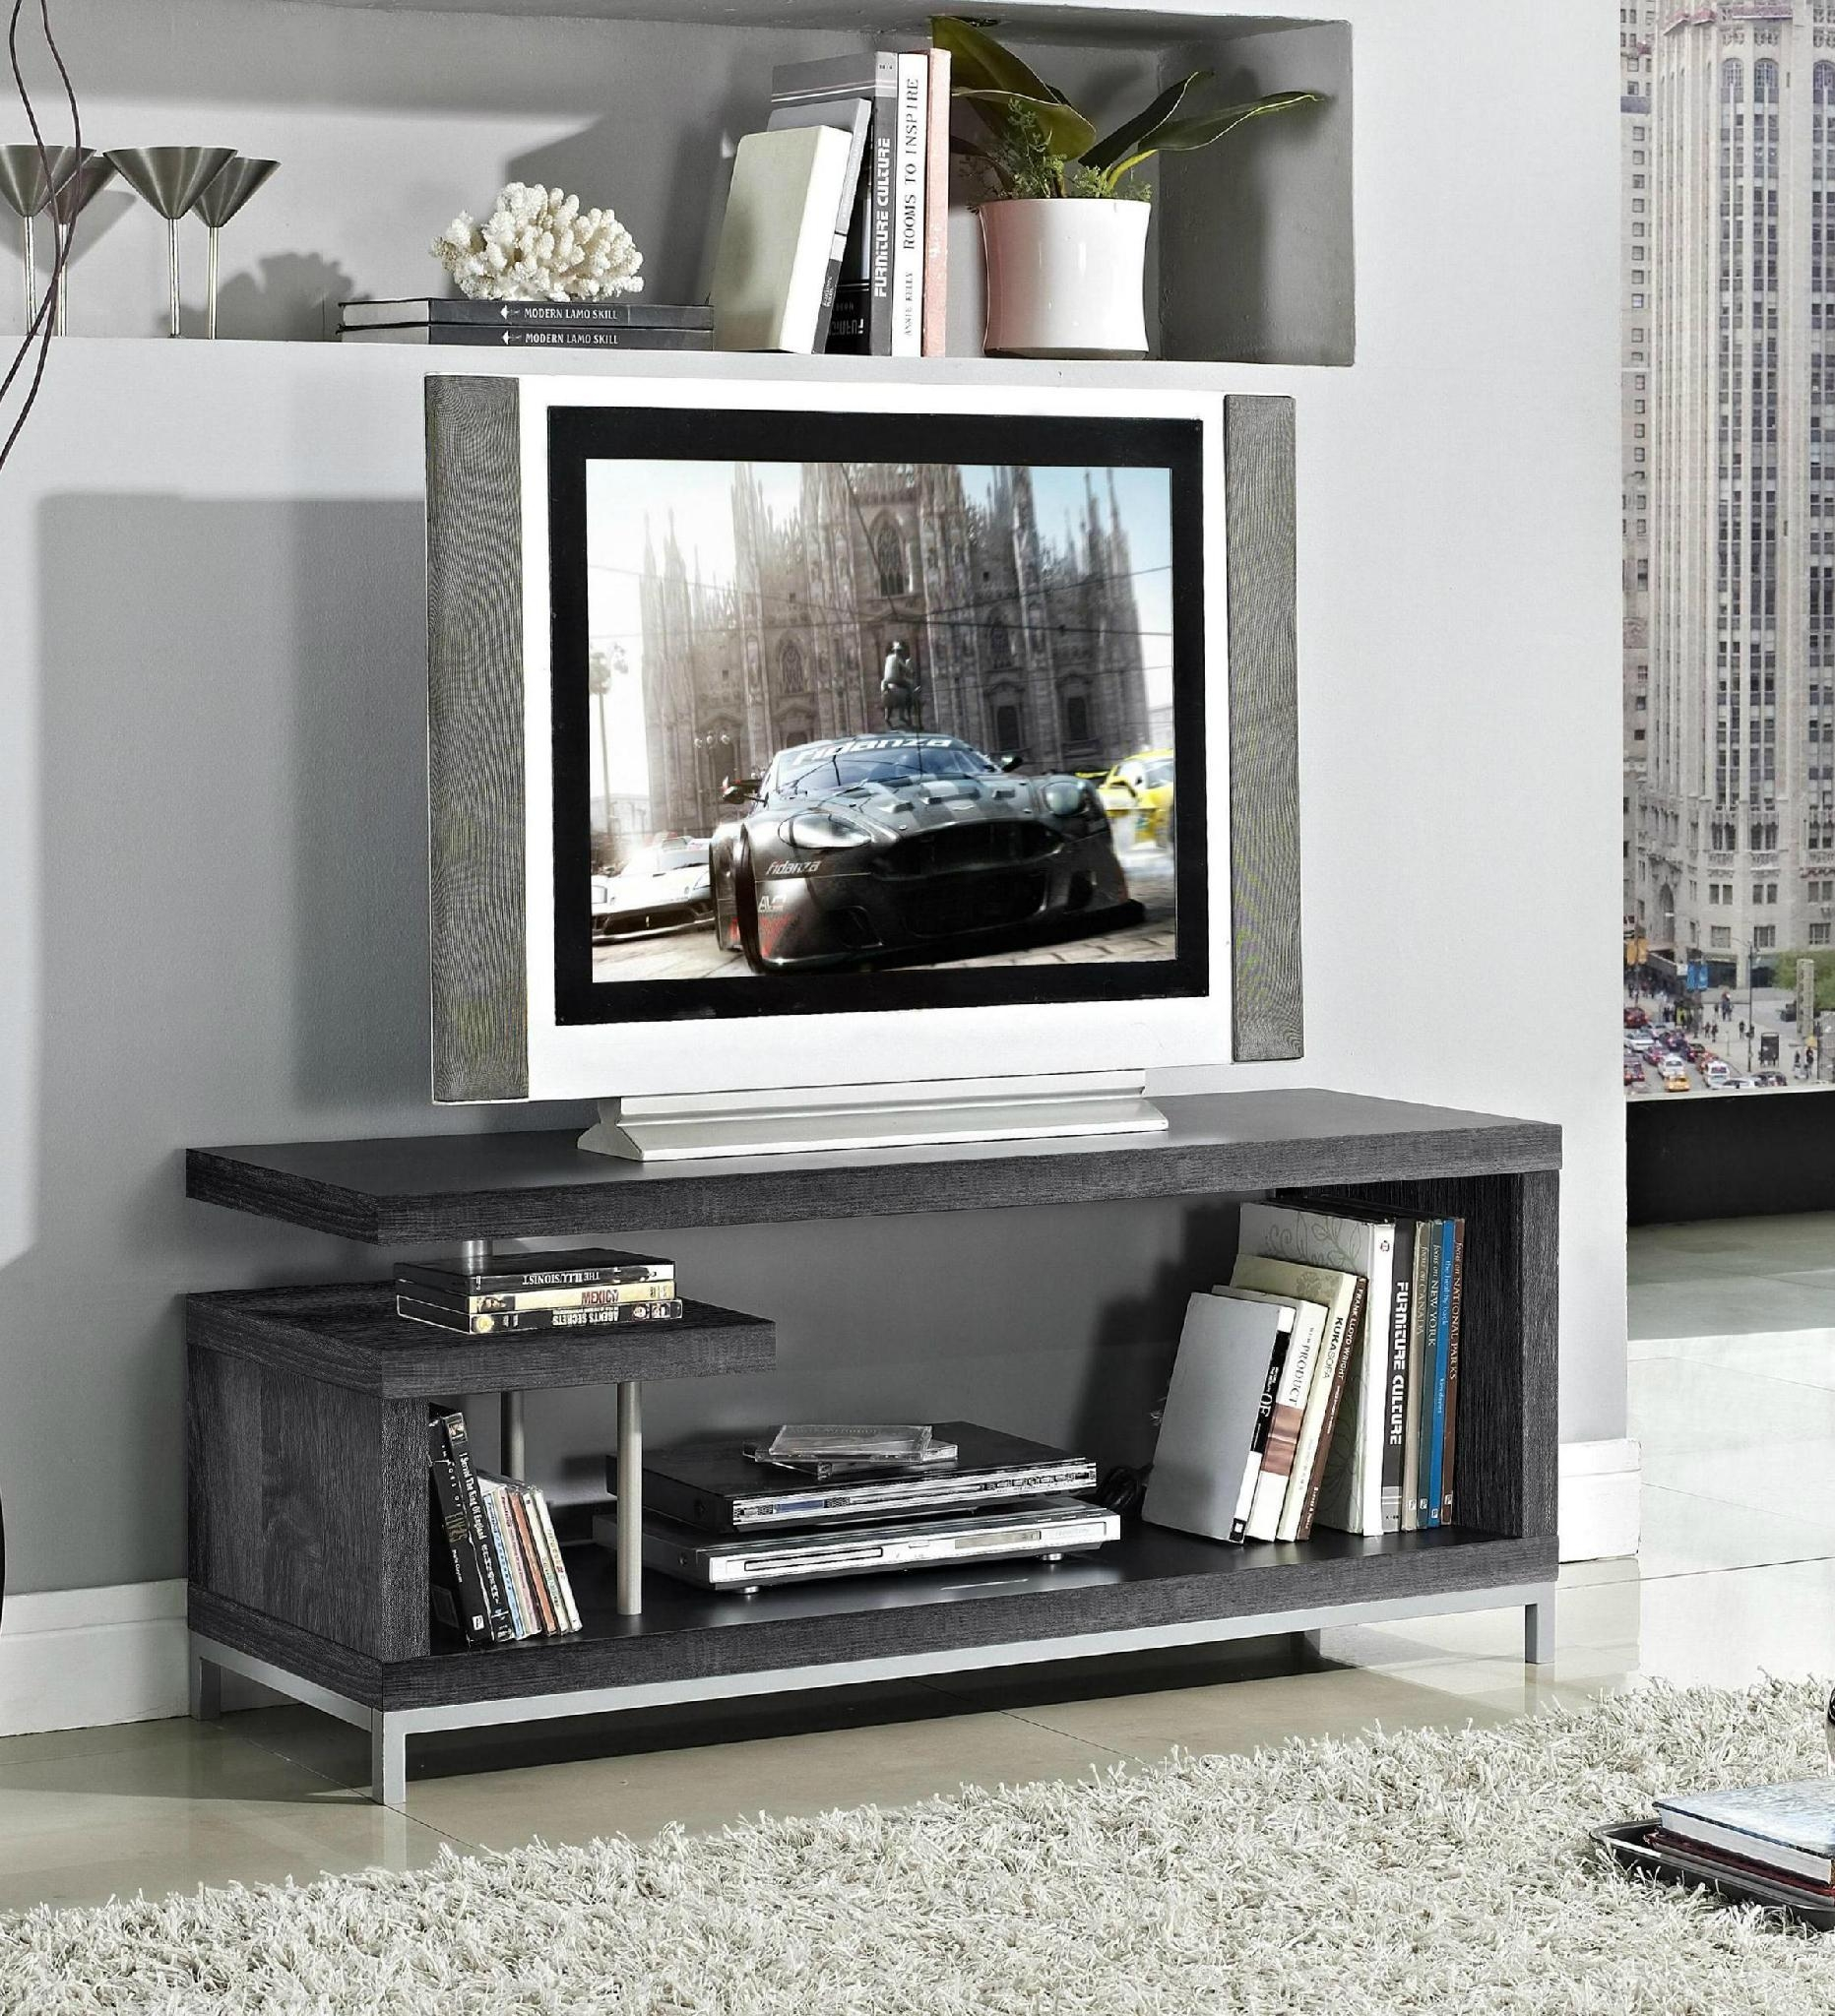 45 inch Wooden Grey Reclaimed LCD TV Table Stand 2